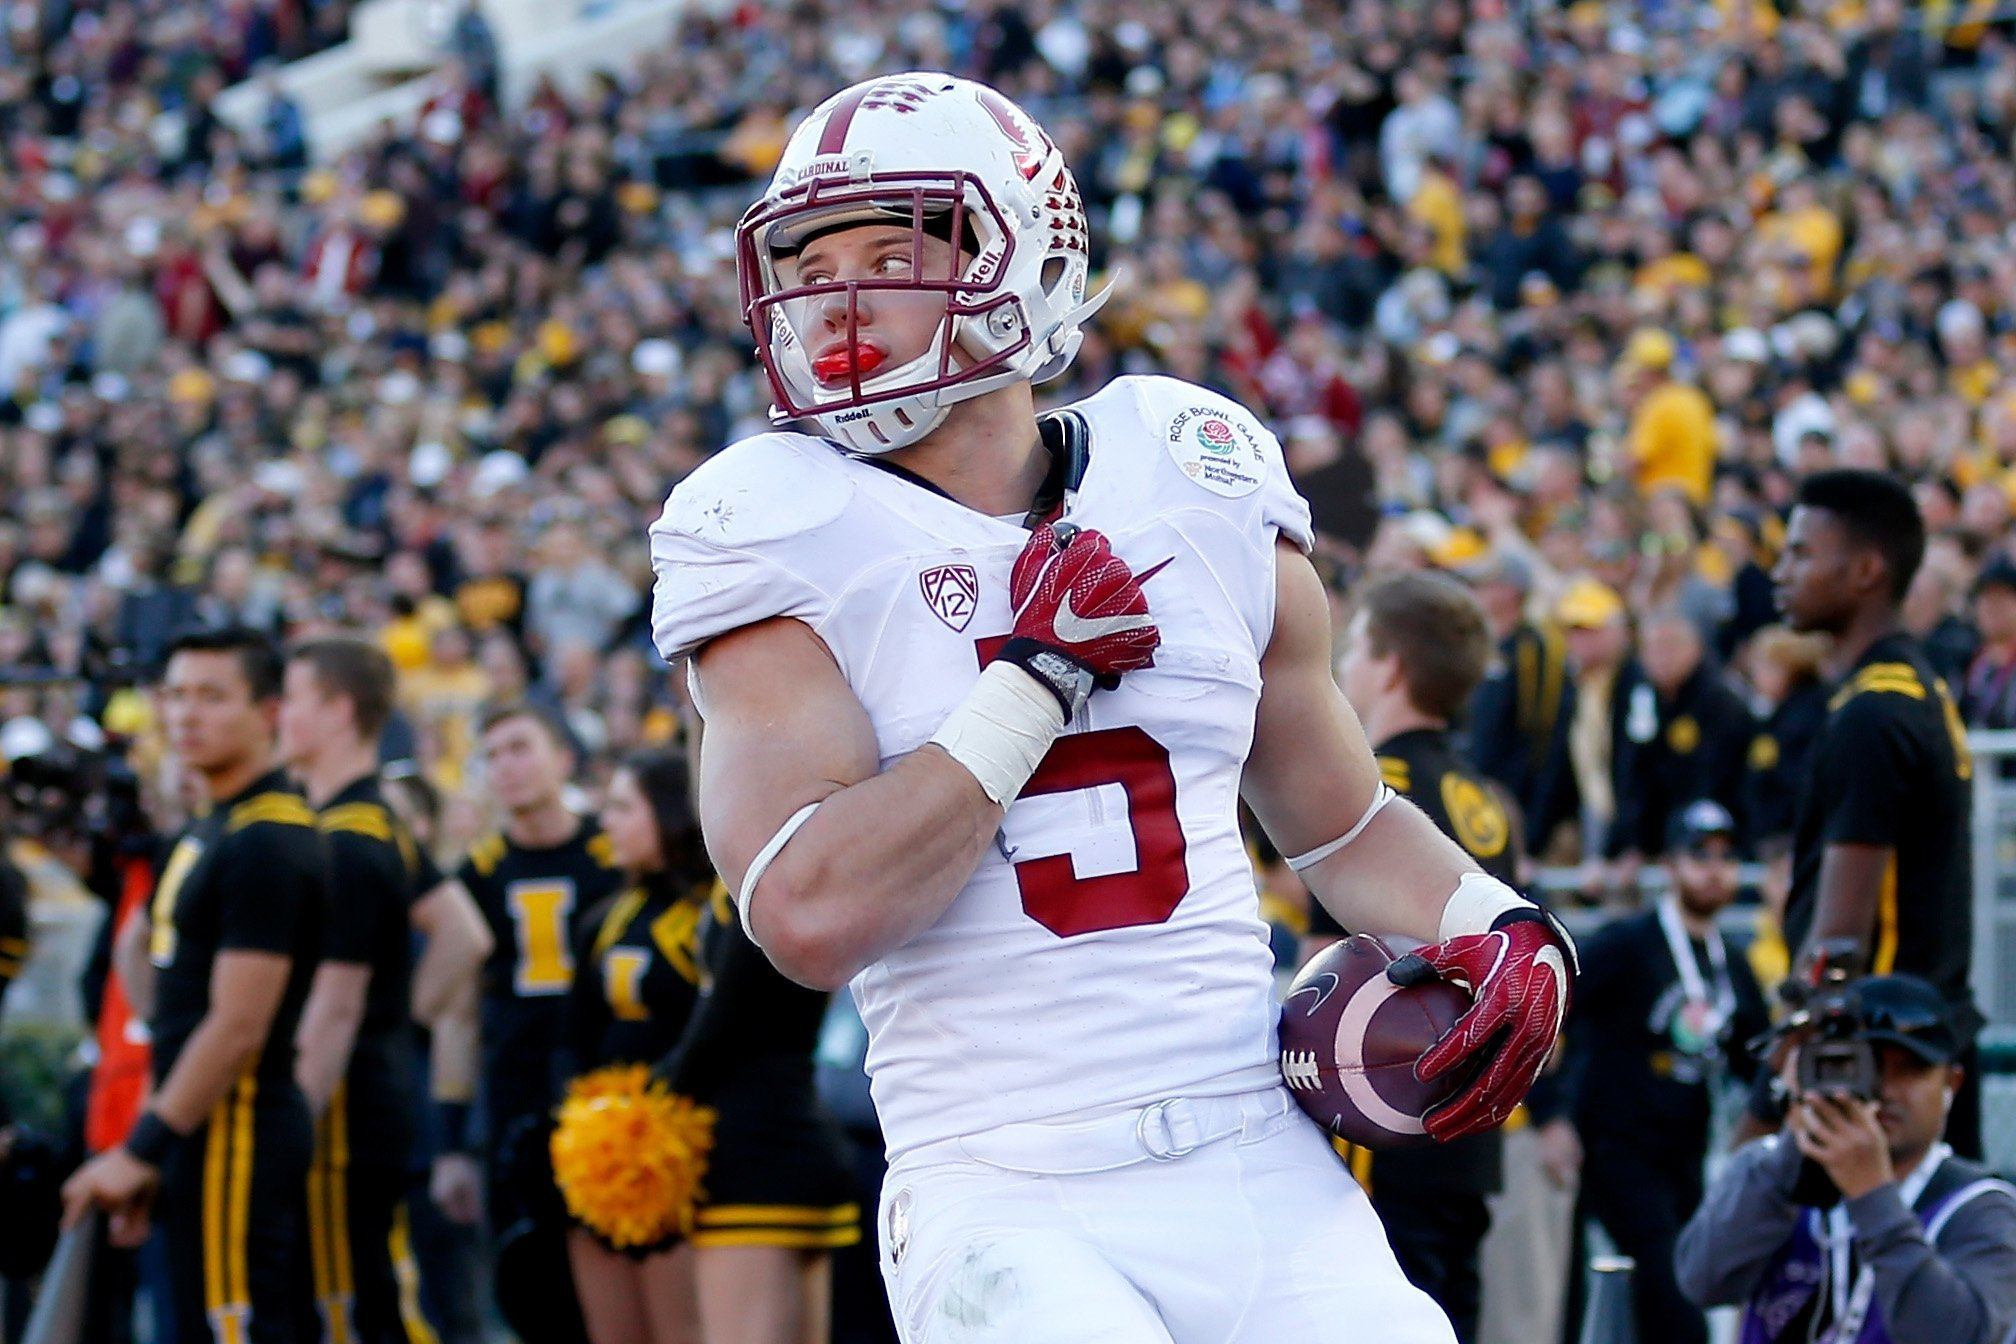 Christian McCaffrey became the first player in Rose Bowl history to tally more than 100 yards rushing and receiving. (Sean M. Haffey / Getty Images)